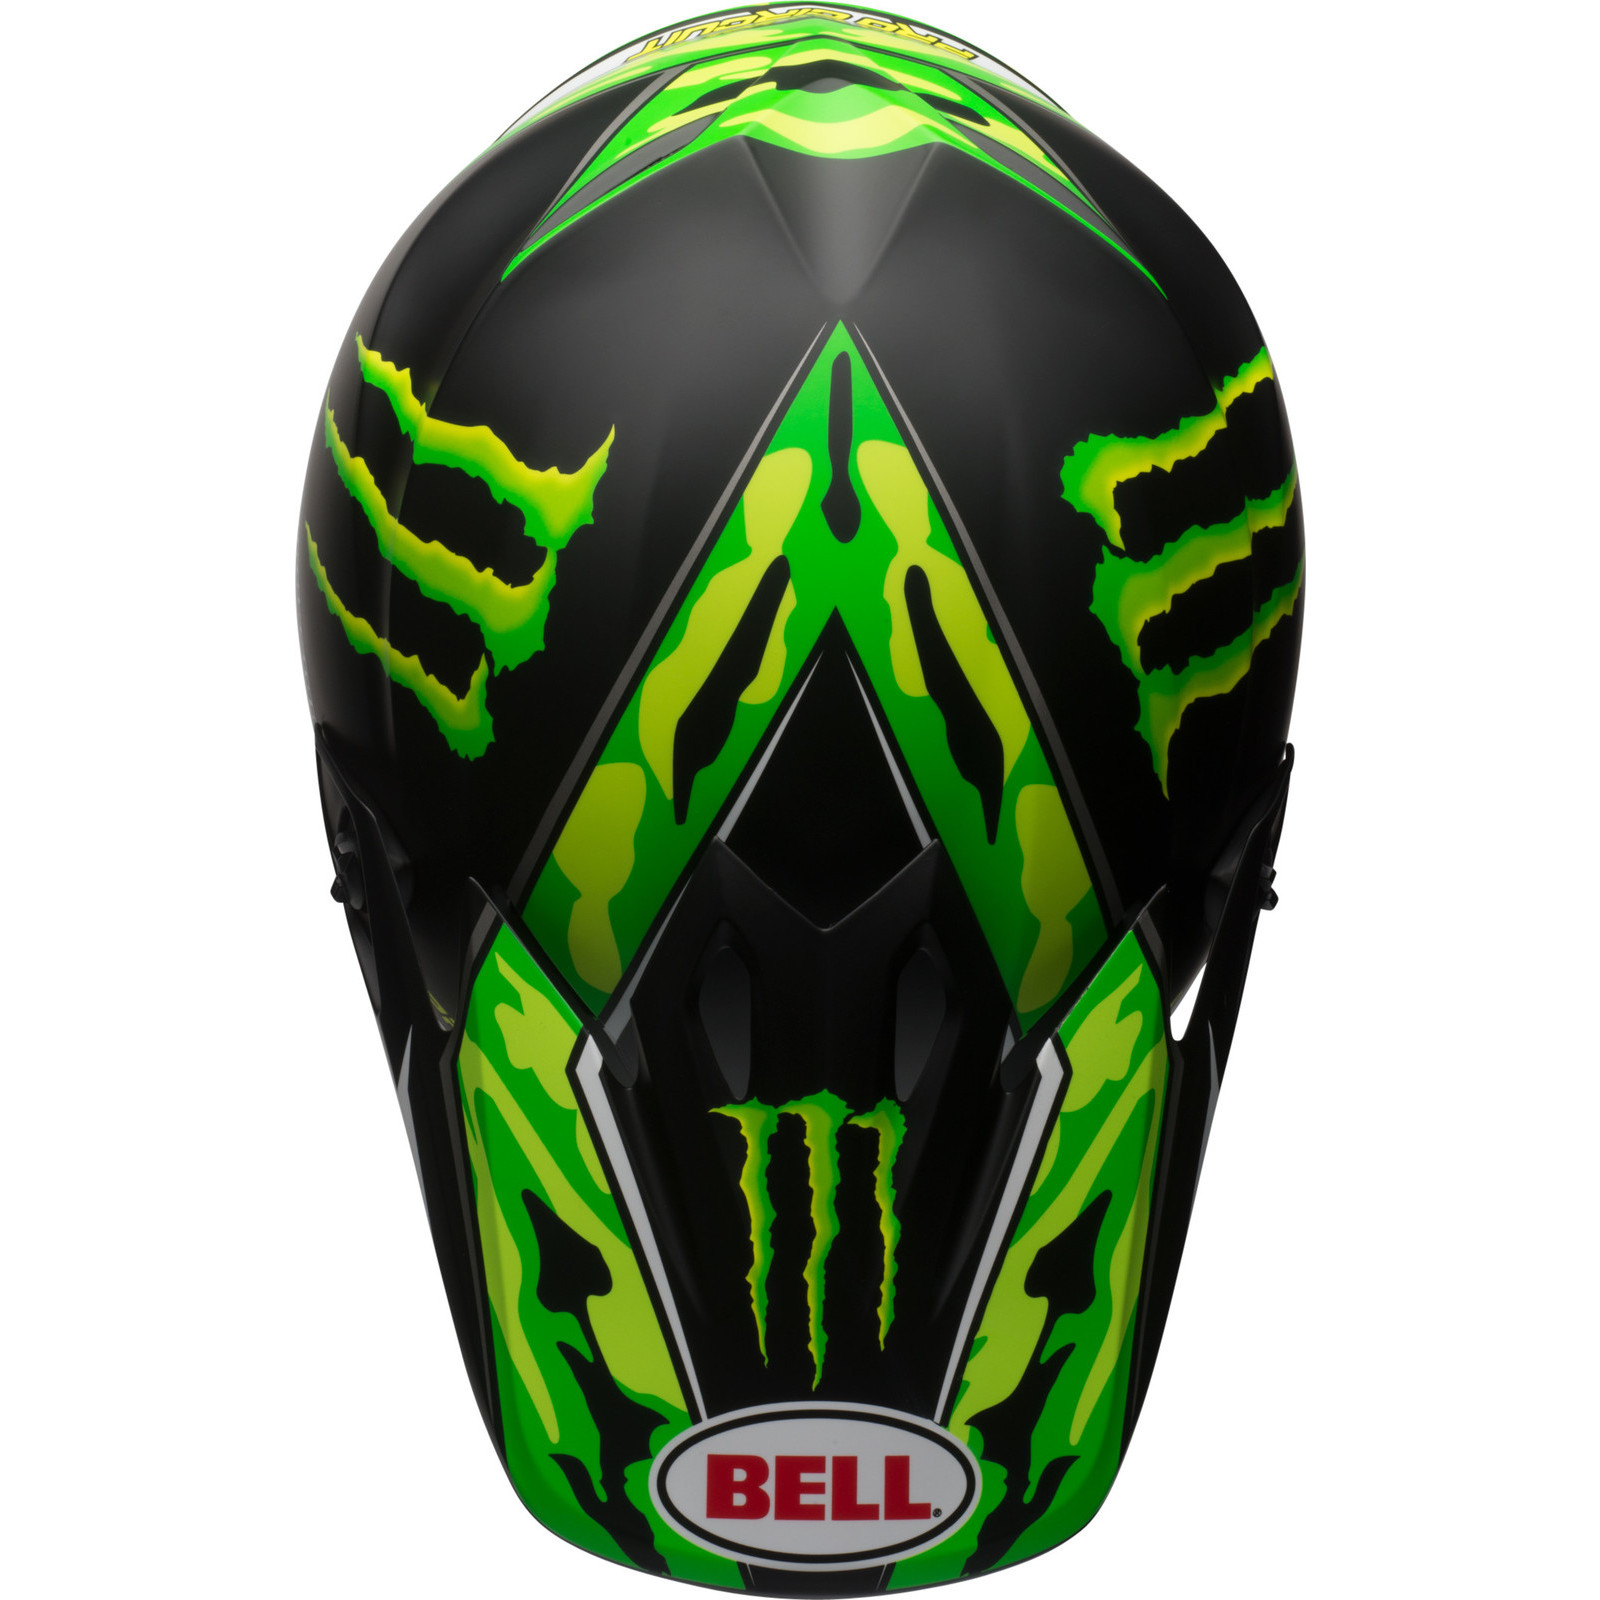 bell mx 9 mips monster pro circuit replica motocross helmet mx off road vented ebay. Black Bedroom Furniture Sets. Home Design Ideas